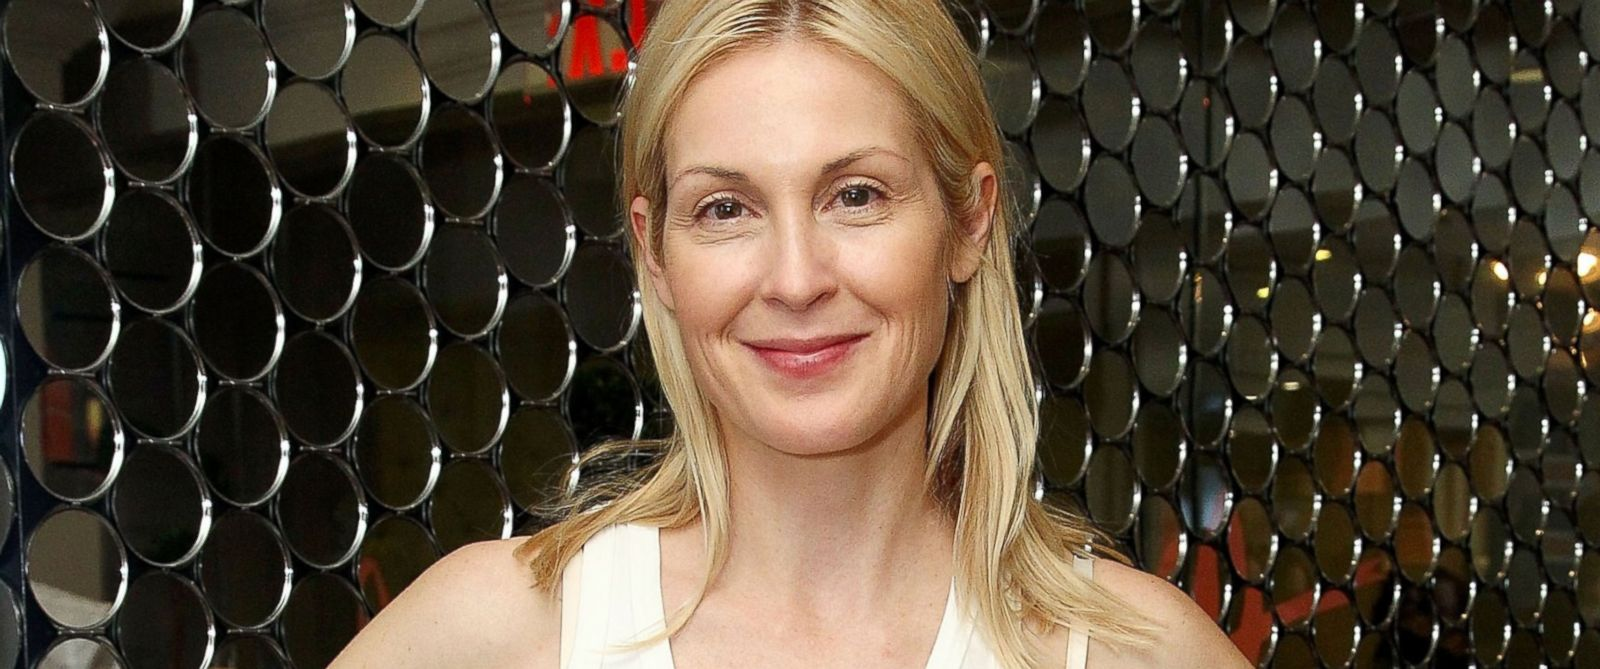 PHOTO: Kelly Rutherford attends the Blushington New York City Grand Opening Party at Le Parker Meridien Underground, July 28, 2015, in New York City.